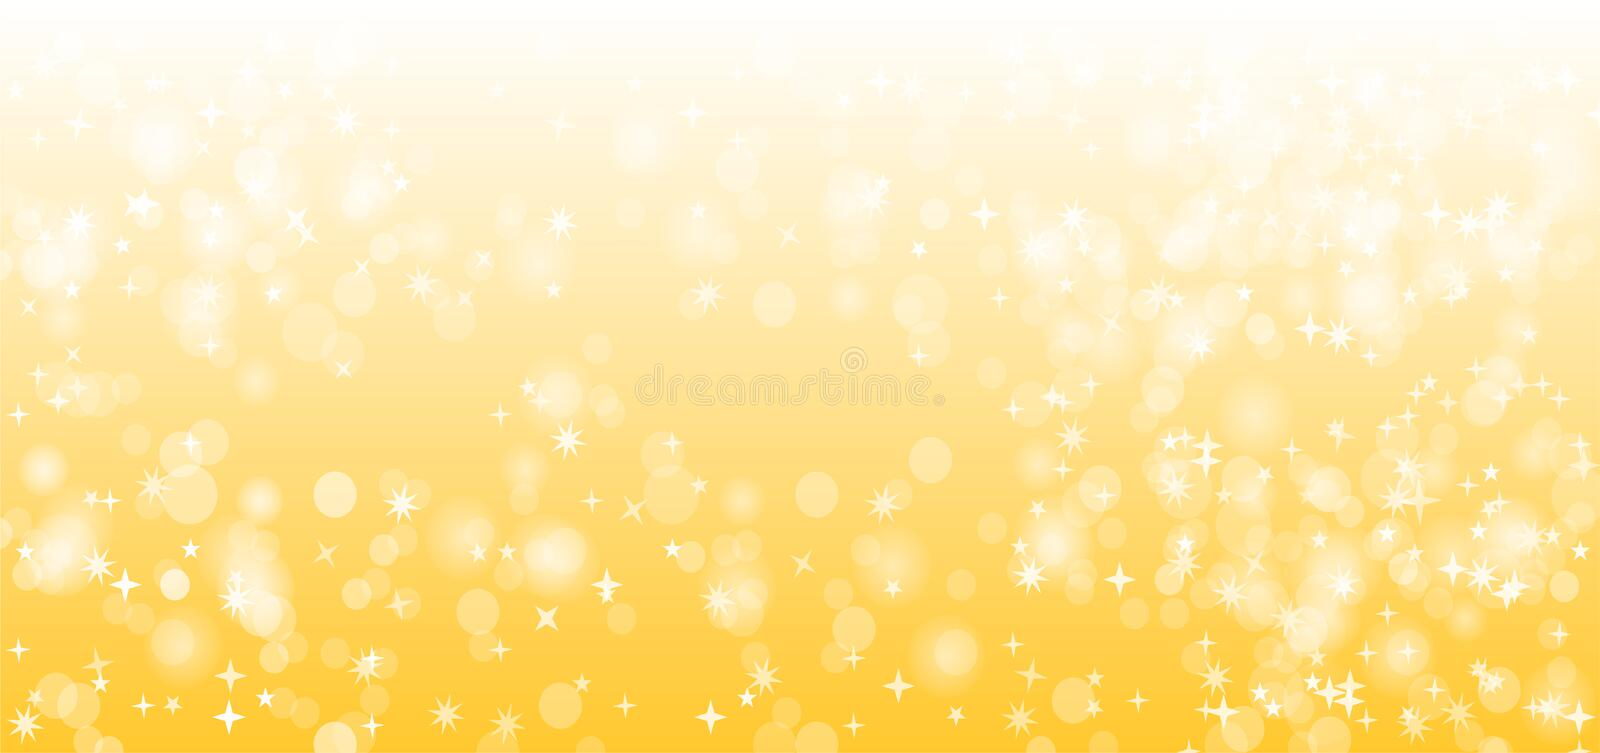 Yellow or Gold Sparkle Vector Background Design royalty free illustration